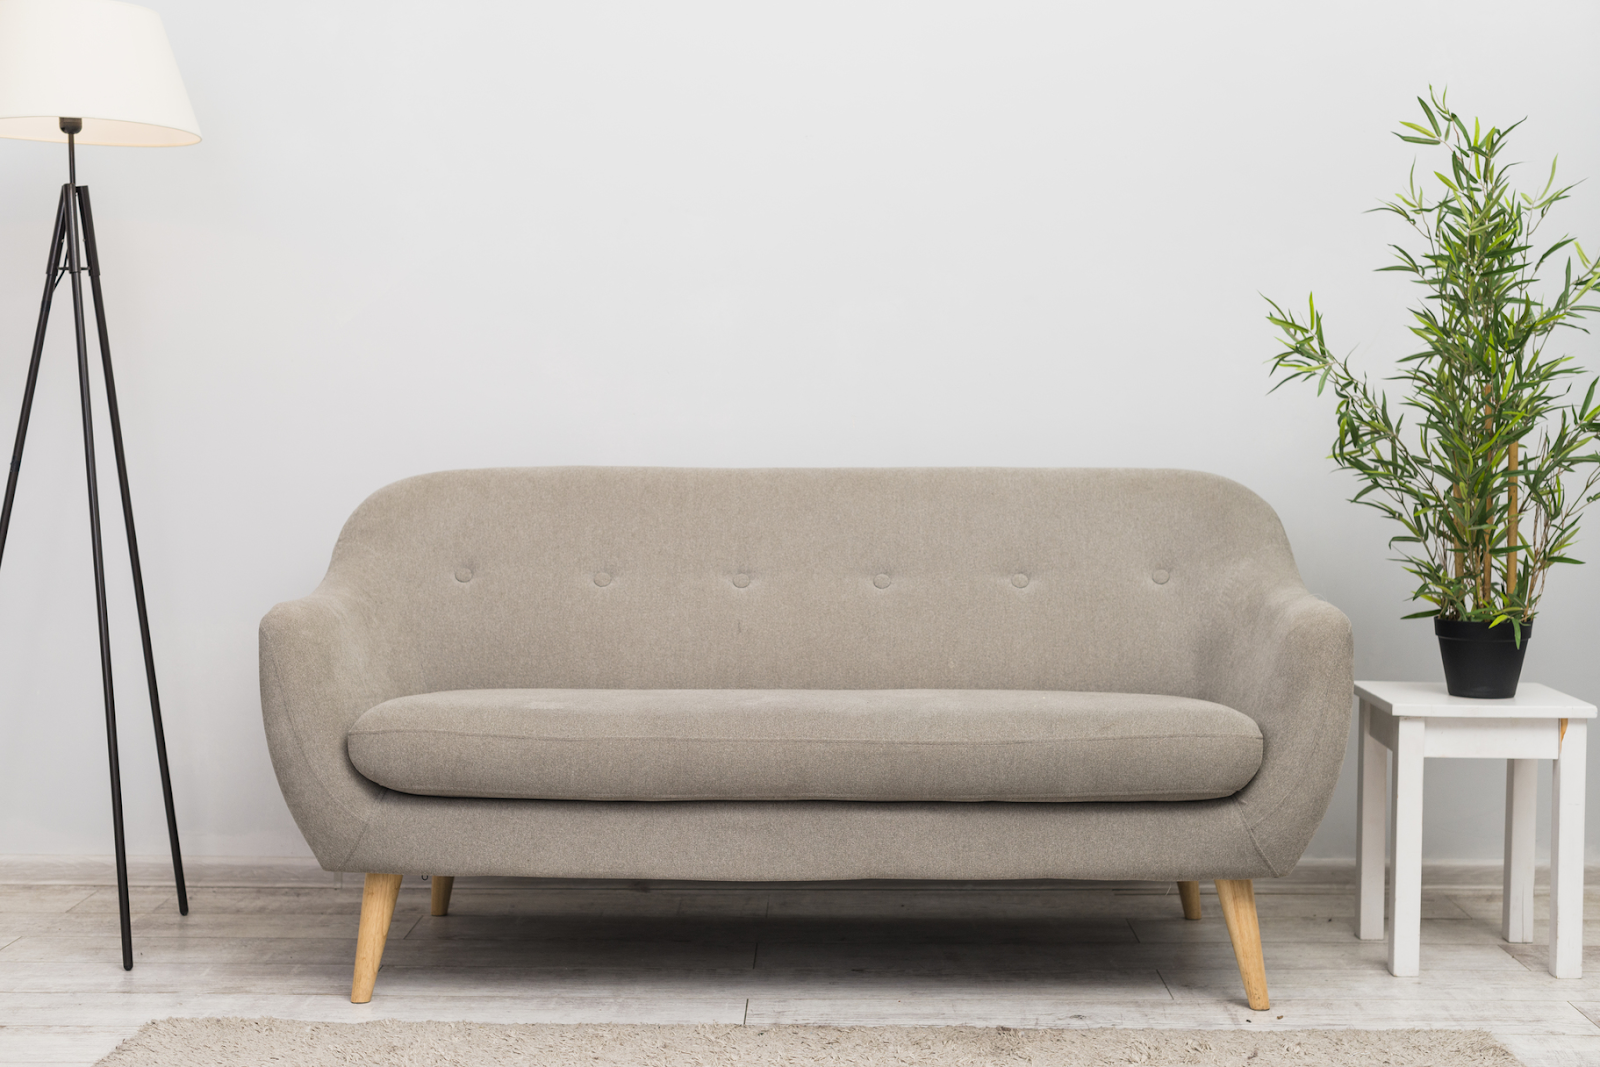 light brown fabric sofa with lamp and plant